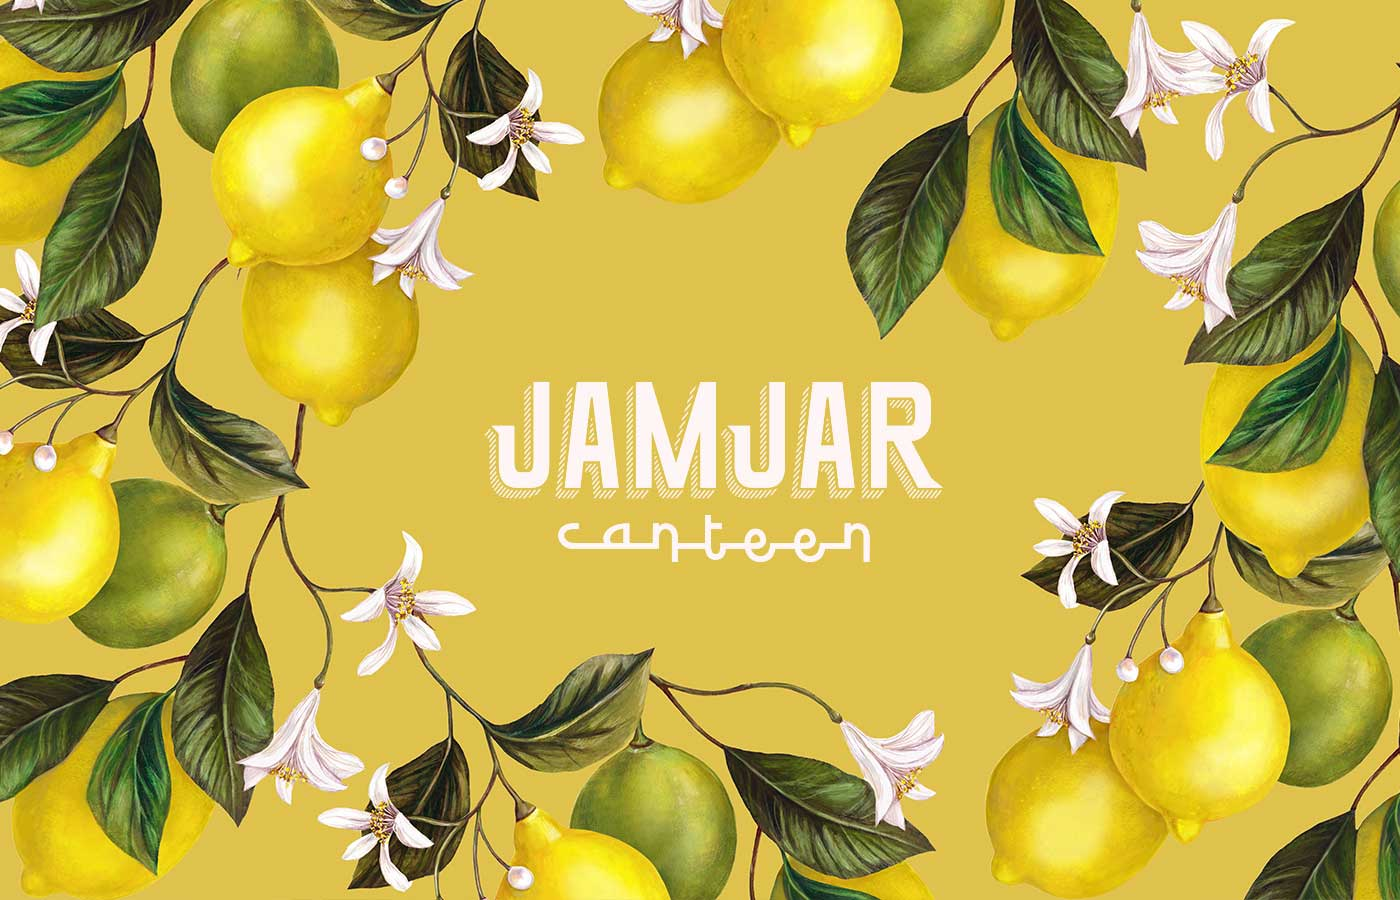 covetdesign_logo-design_branding_package-design_graphic-designer_vancouver_work_wide_jamjar-lemons